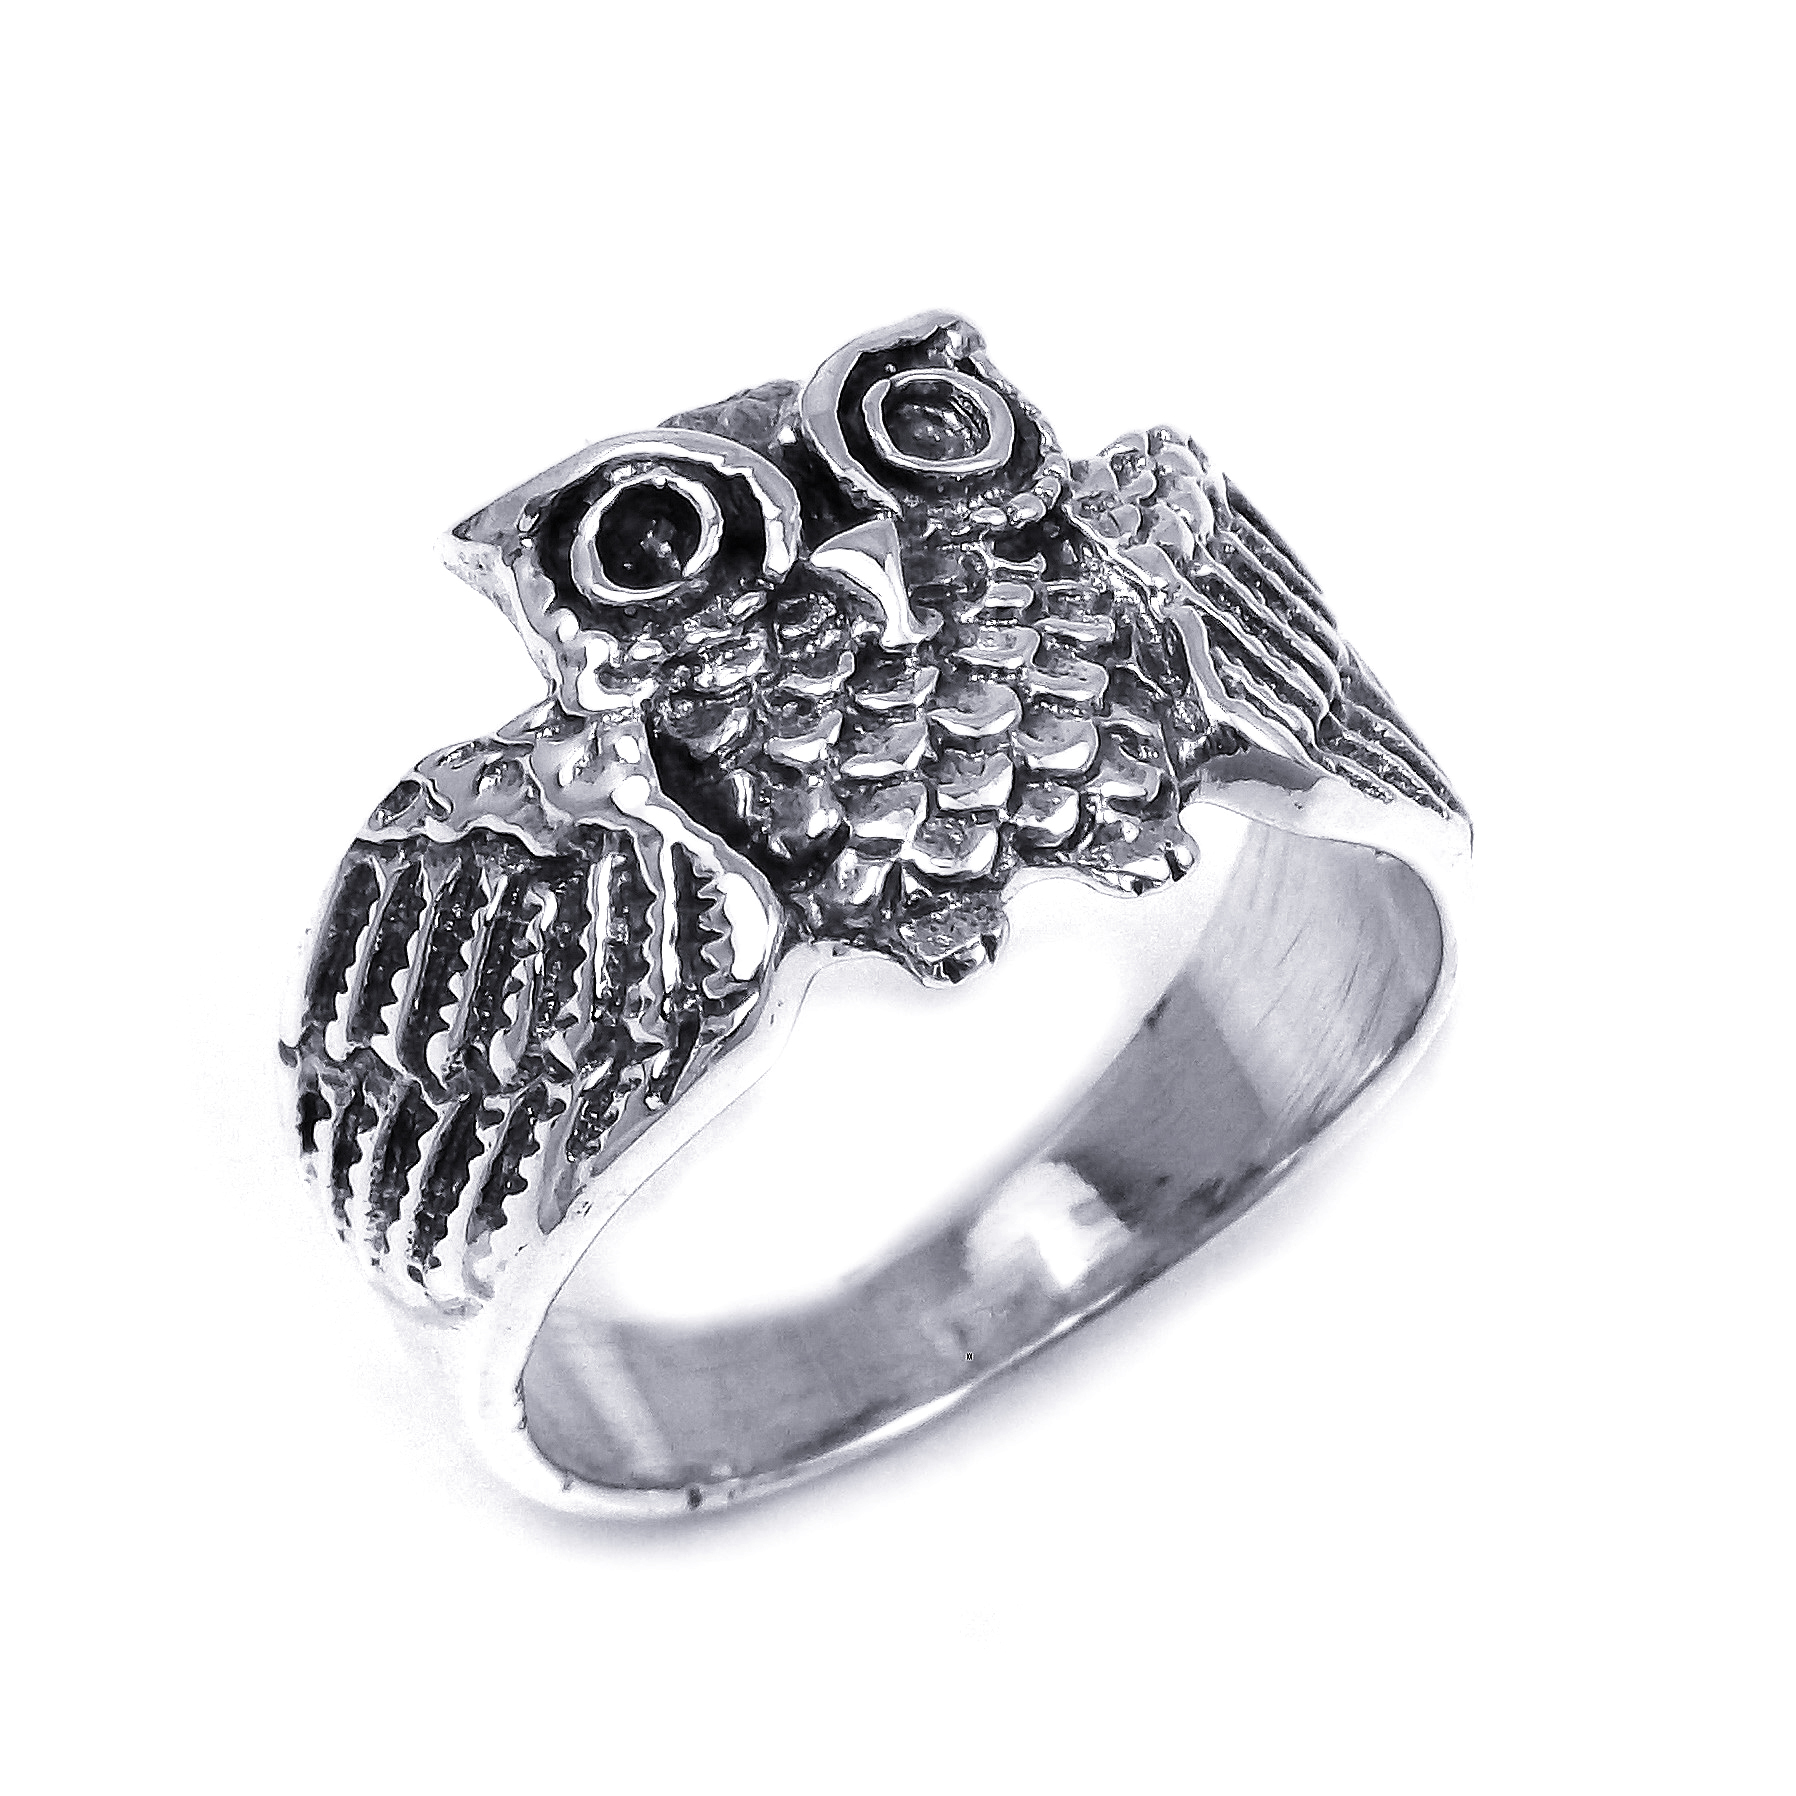 A Wide Awake Owl Center This Design From Thailand Crafted With Sterling  Silver, This Ring Is The Perfect Addition To Your Fashionable Style